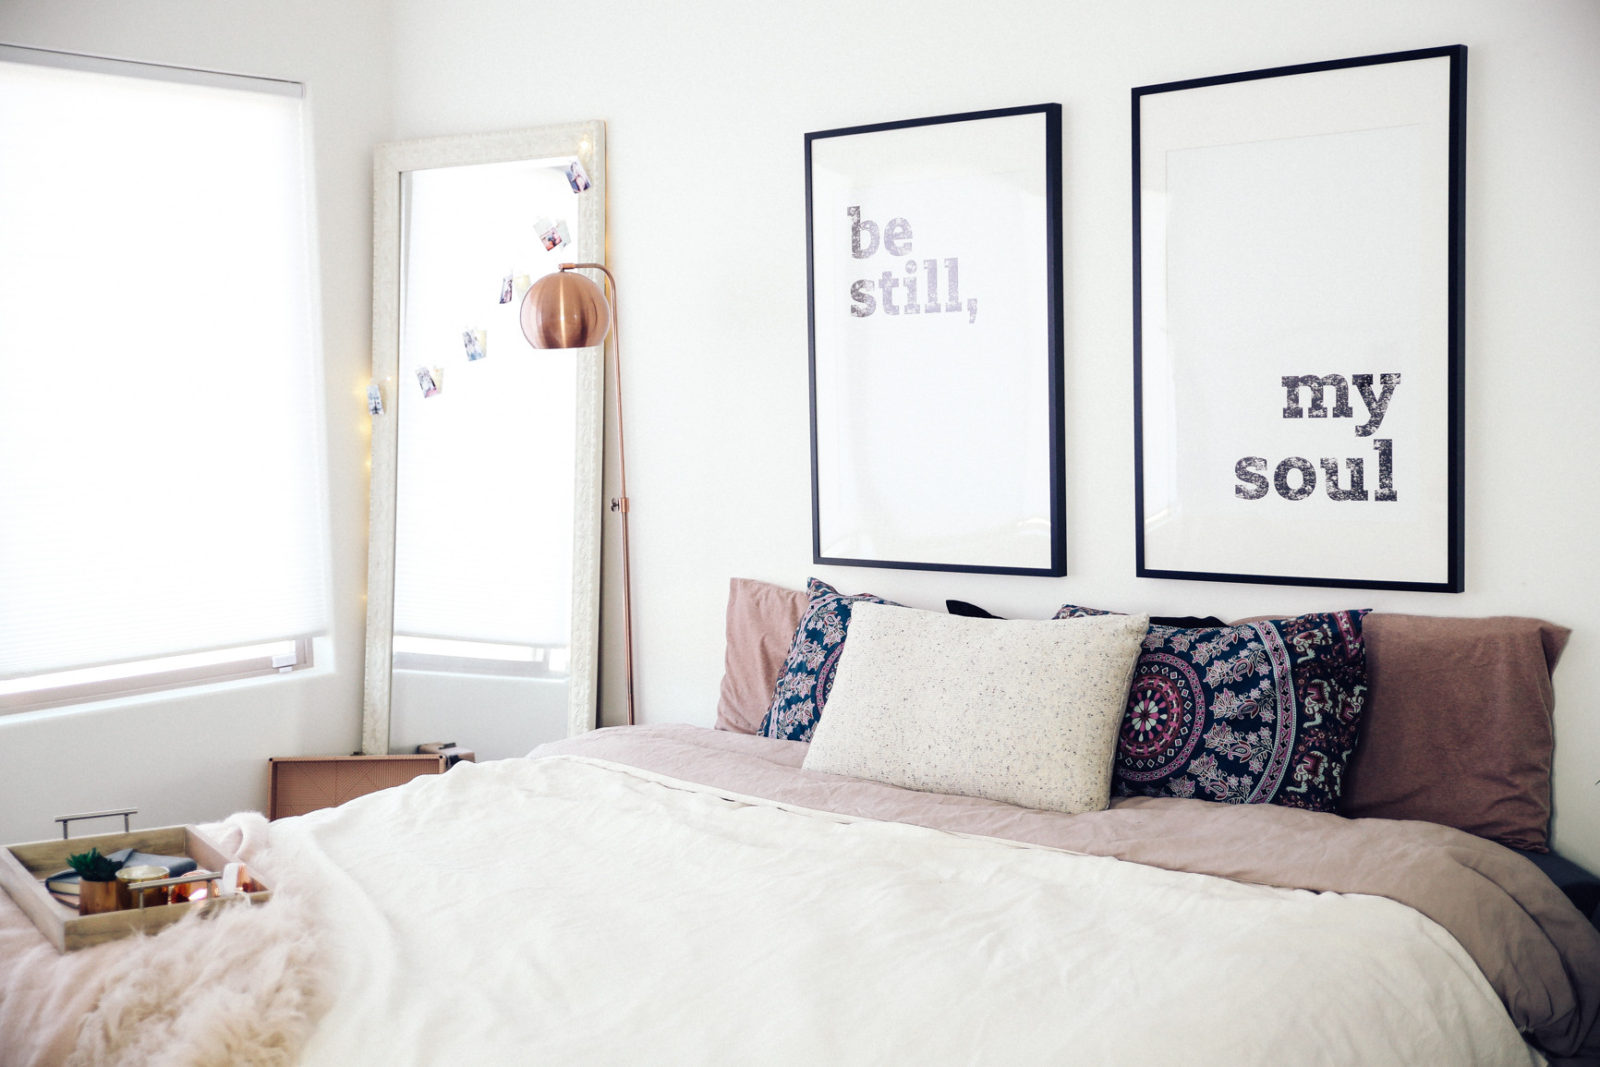 urban-outfitters-fall-winter-room-decor-makeover-ideas-34